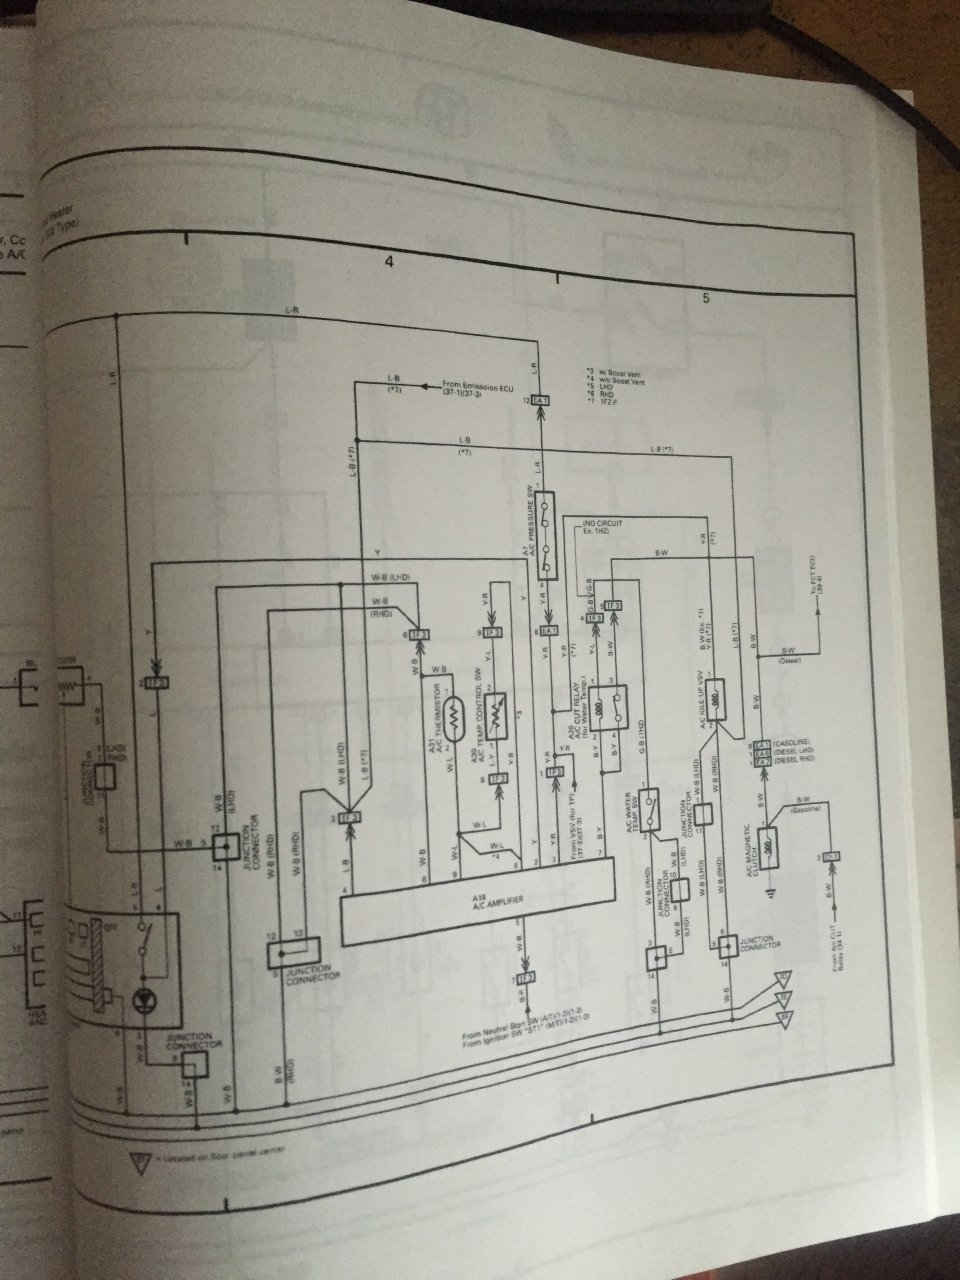 Wiring Diagram For Air Conditioner Free Image About Wiring Diagram